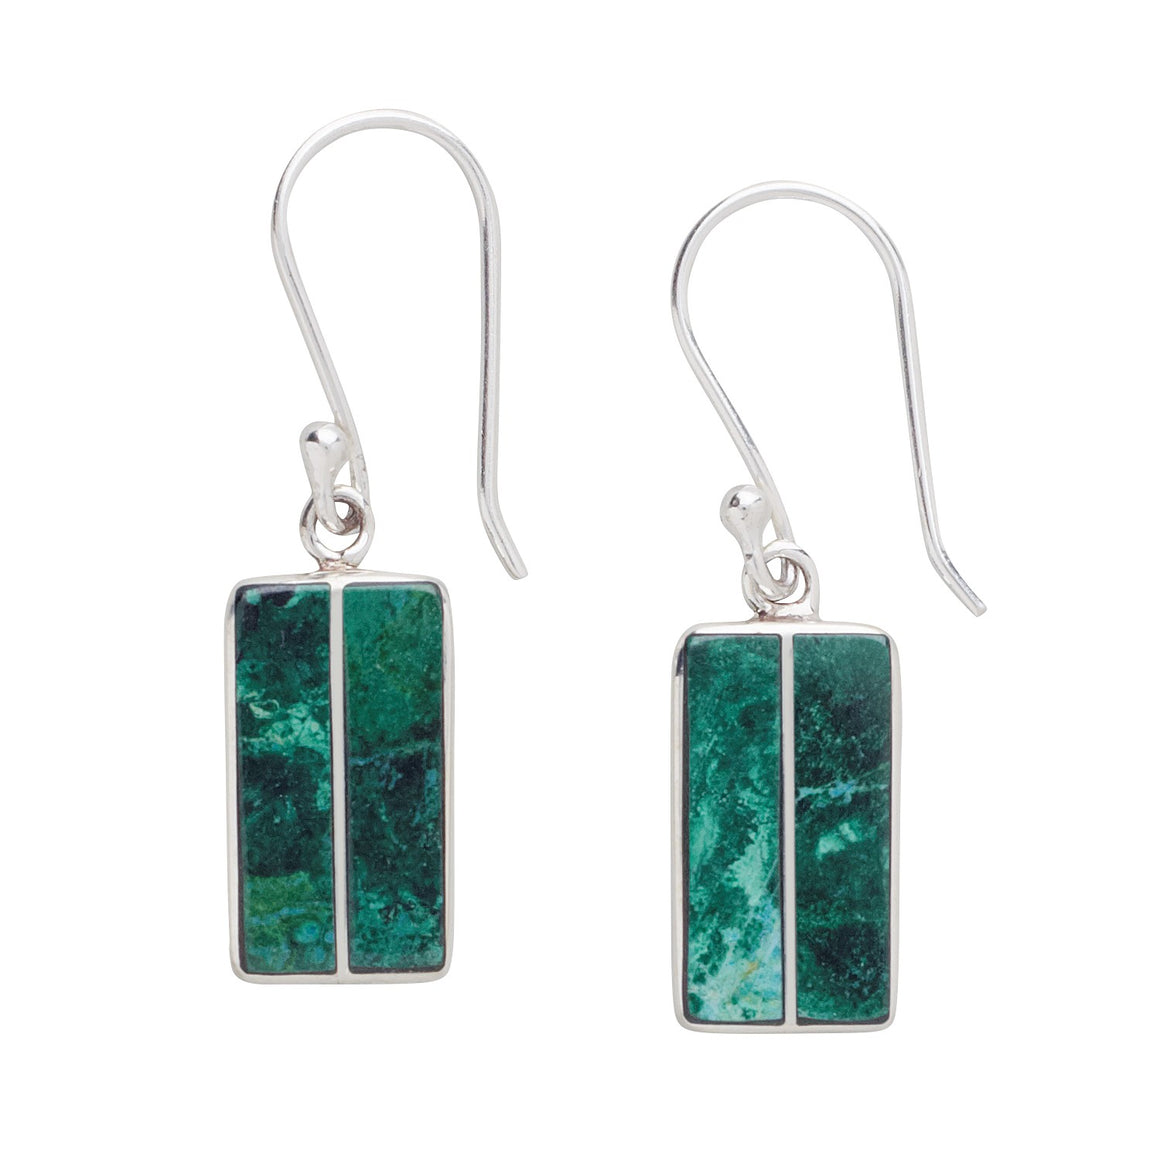 Stone Temple Turquoise Sterling Silver Earrings